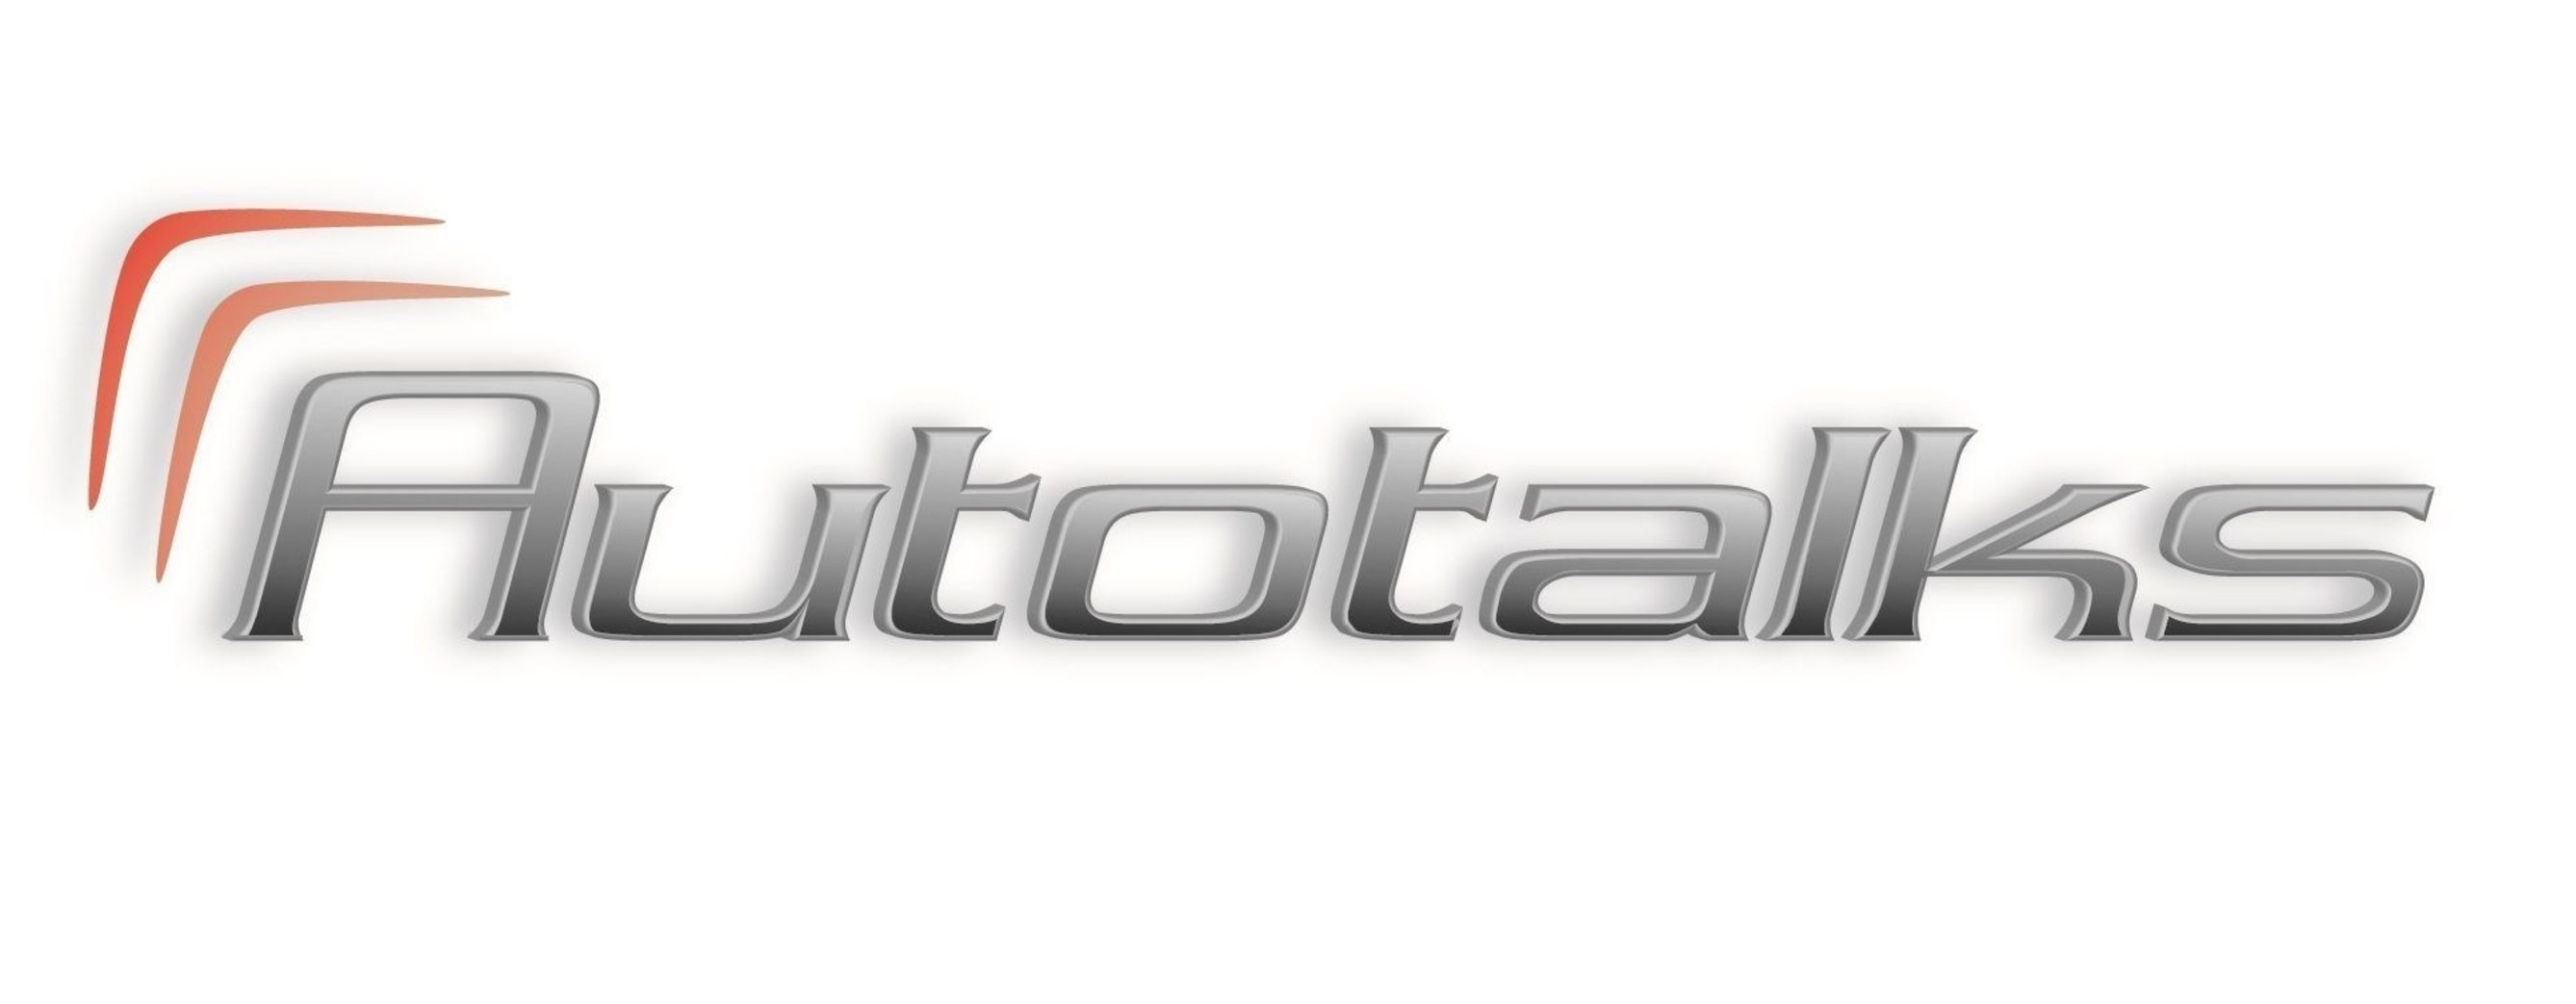 Logo of the company autotalks